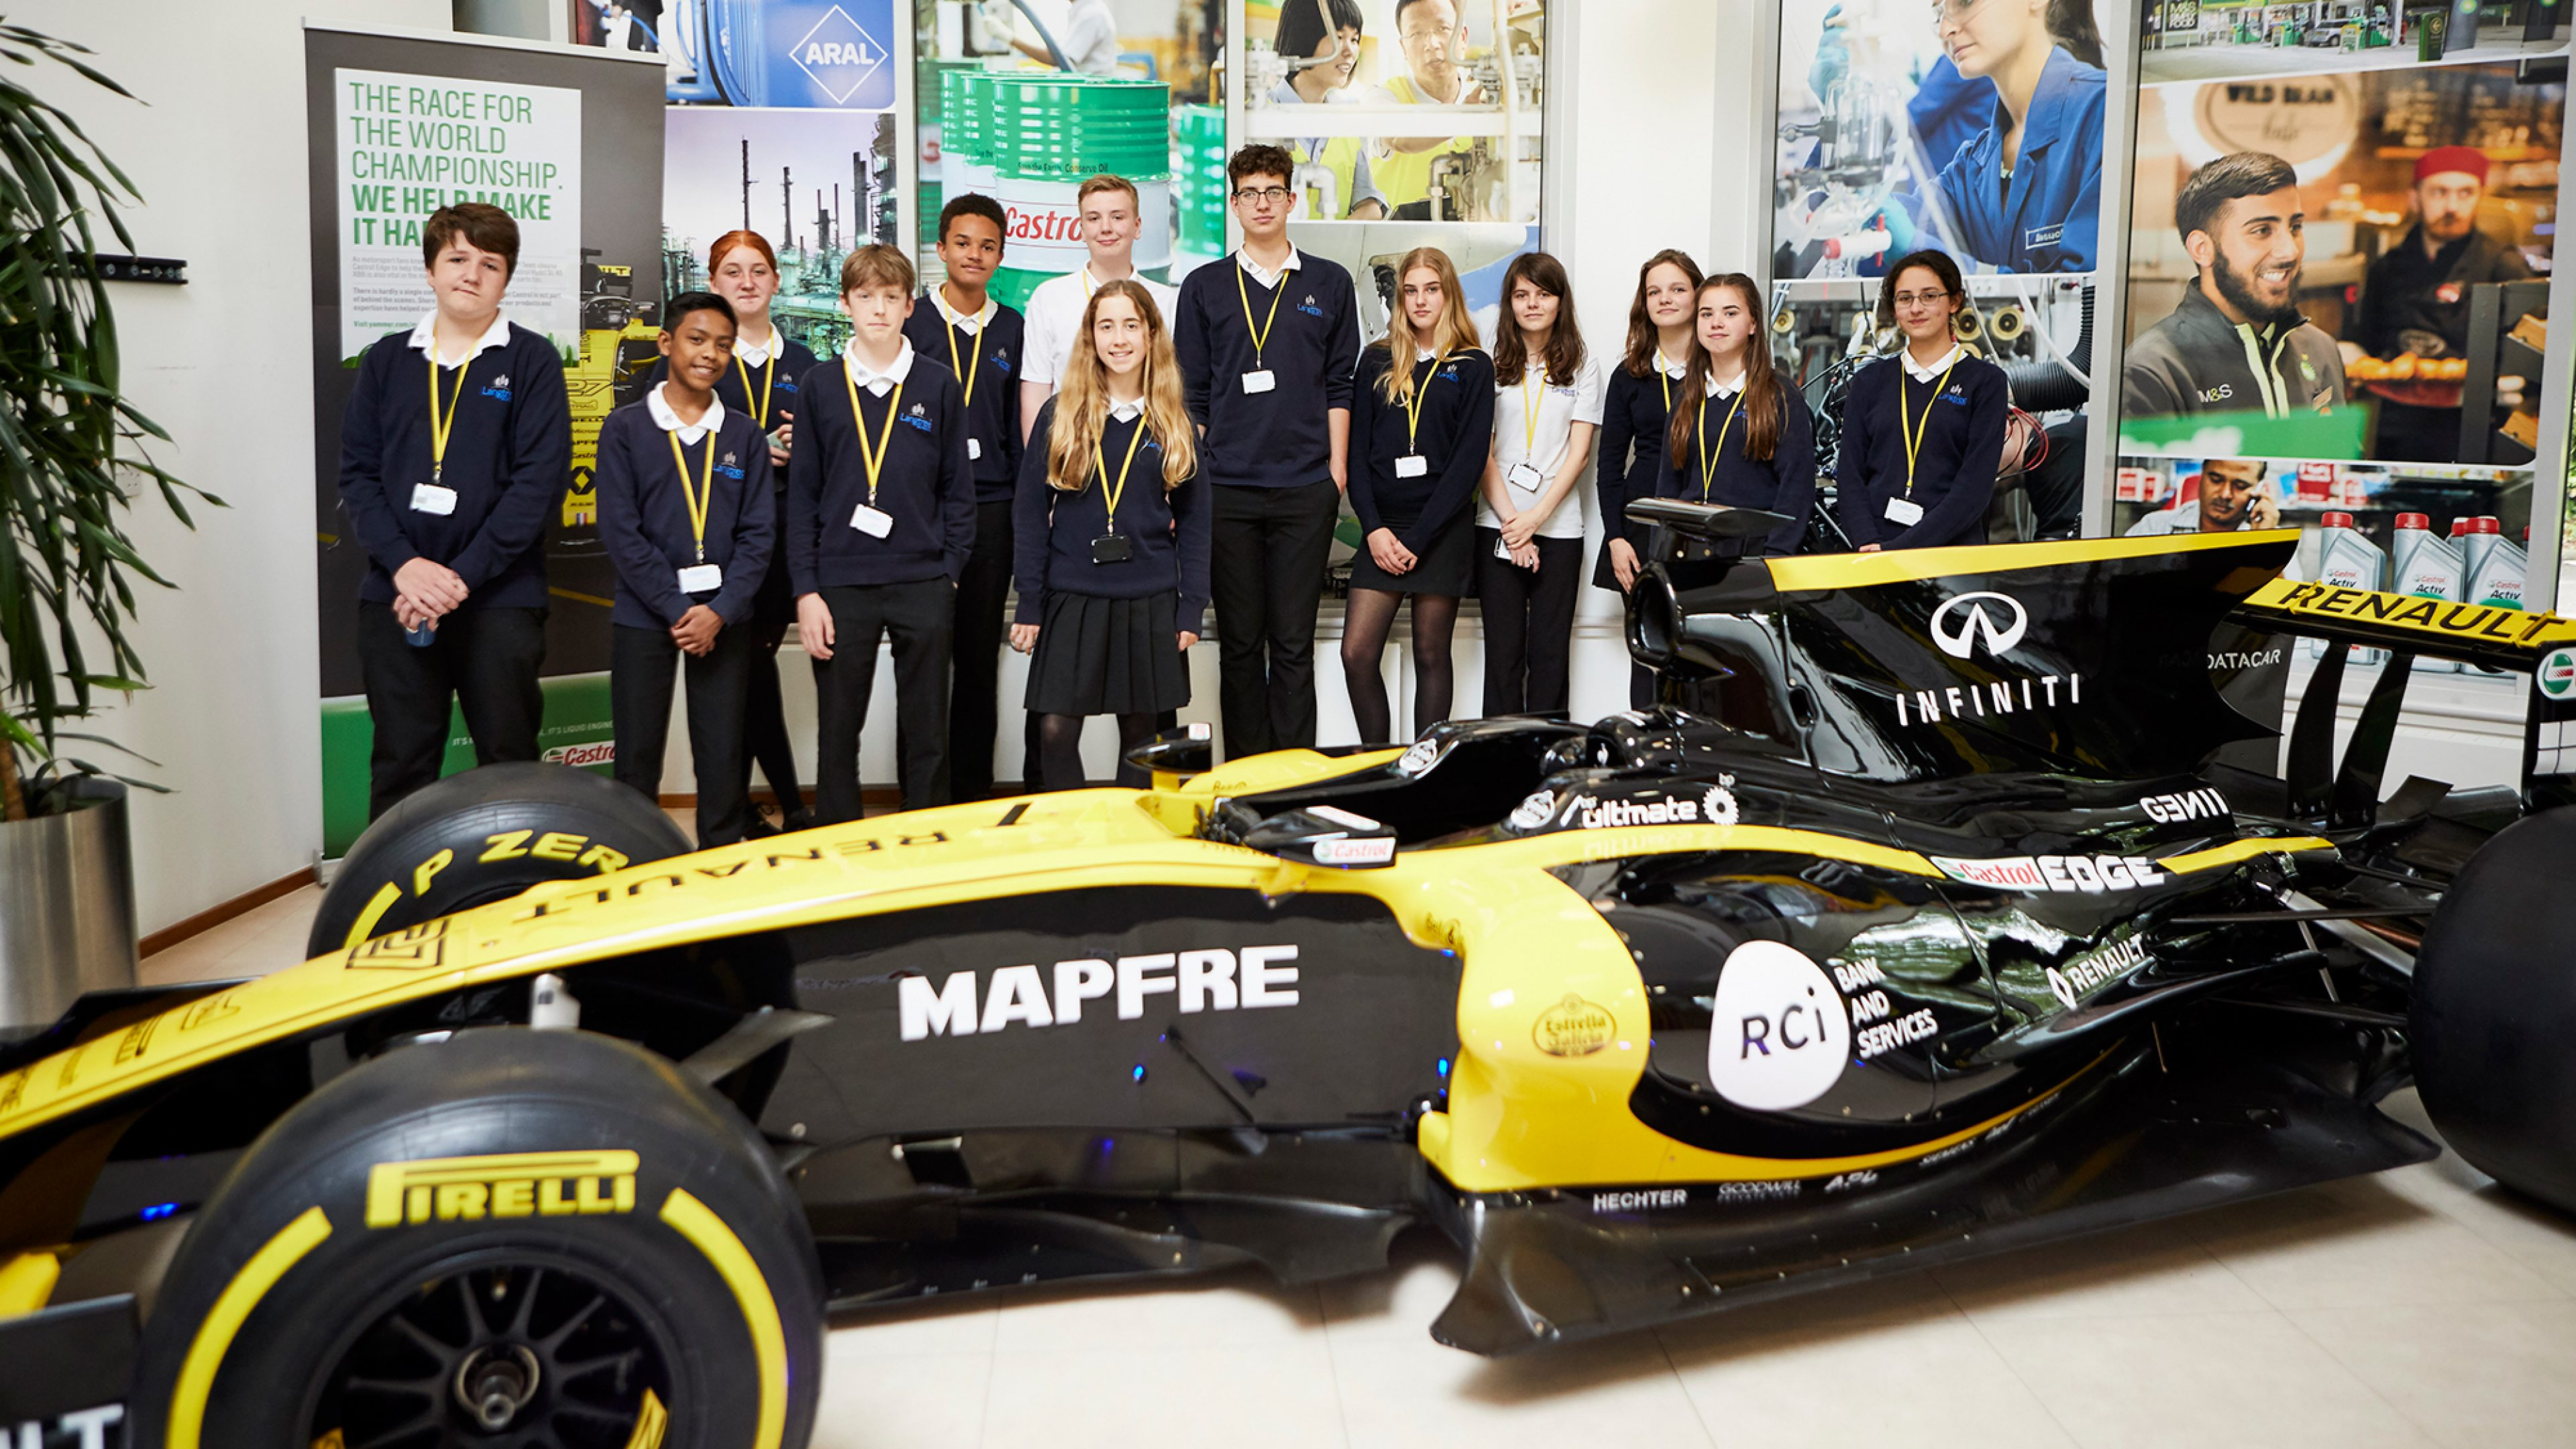 A group of secondary school girls and boys admire an F1 racing car